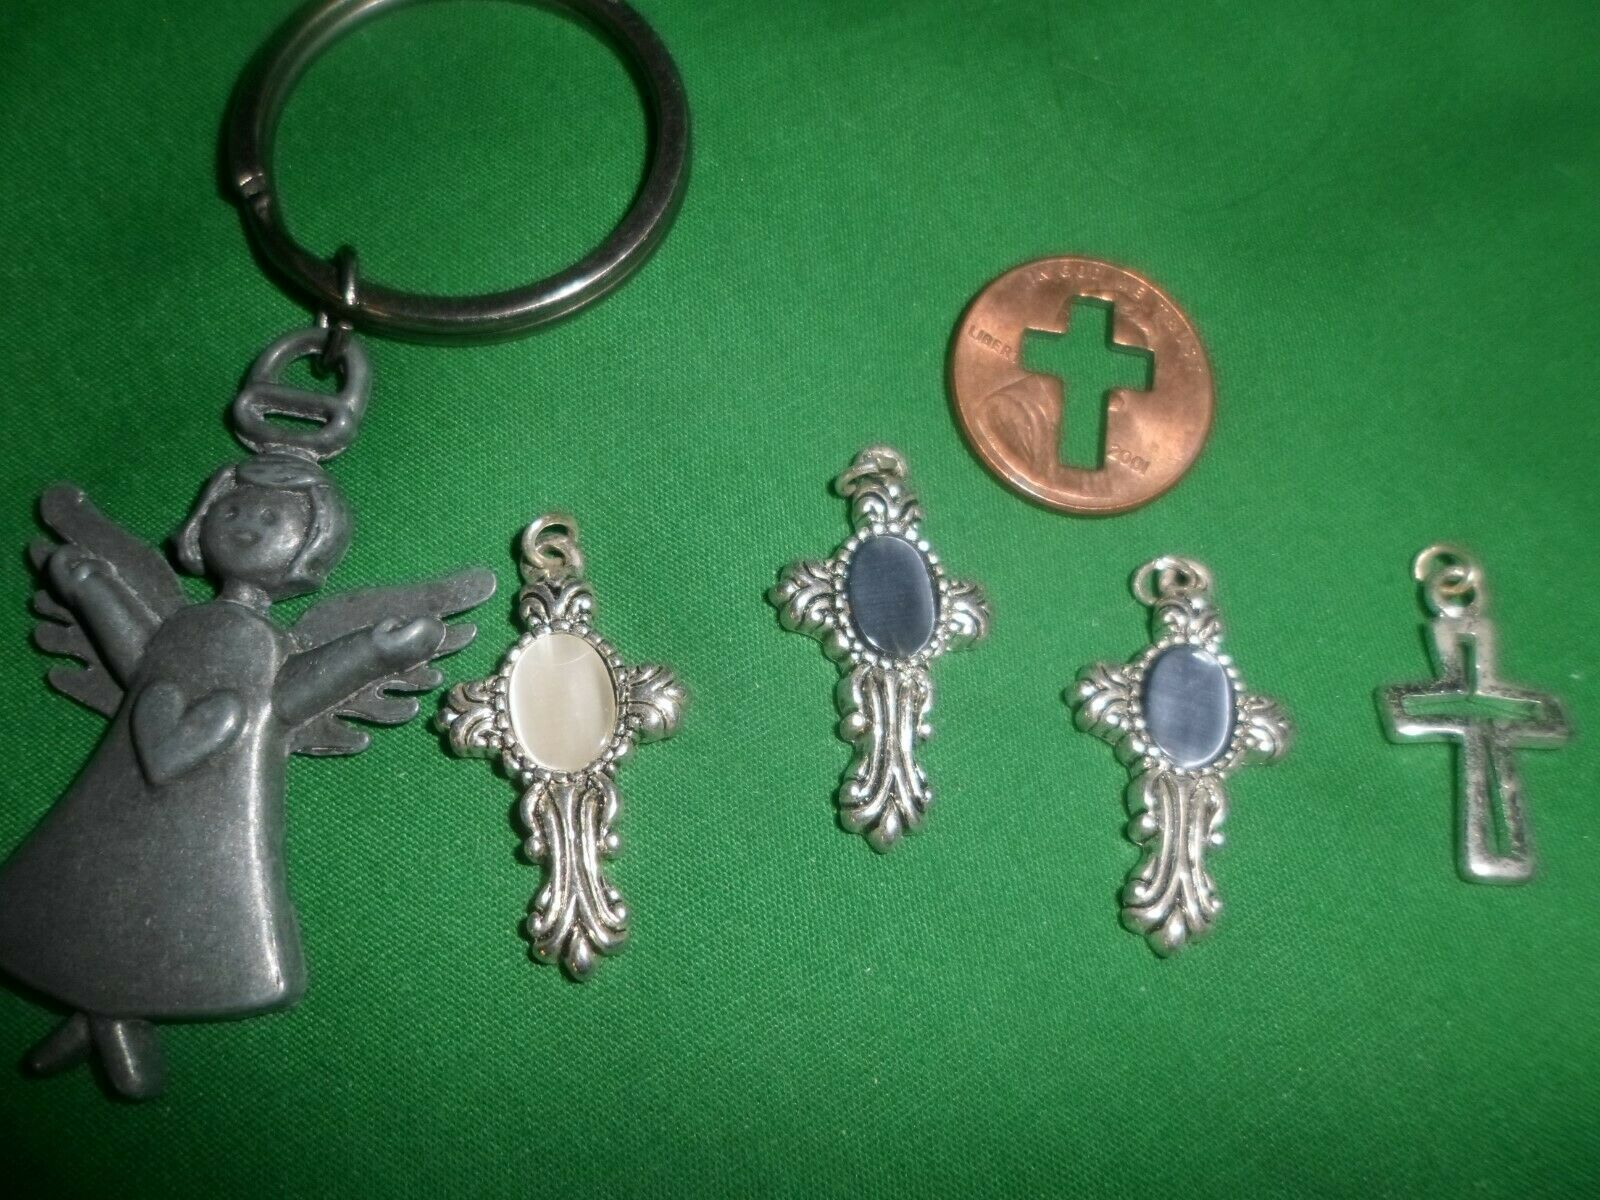 Primary image for Key Chain Purse Fob Charm peweter angel + 4 cross charms 1 cut out cross penny